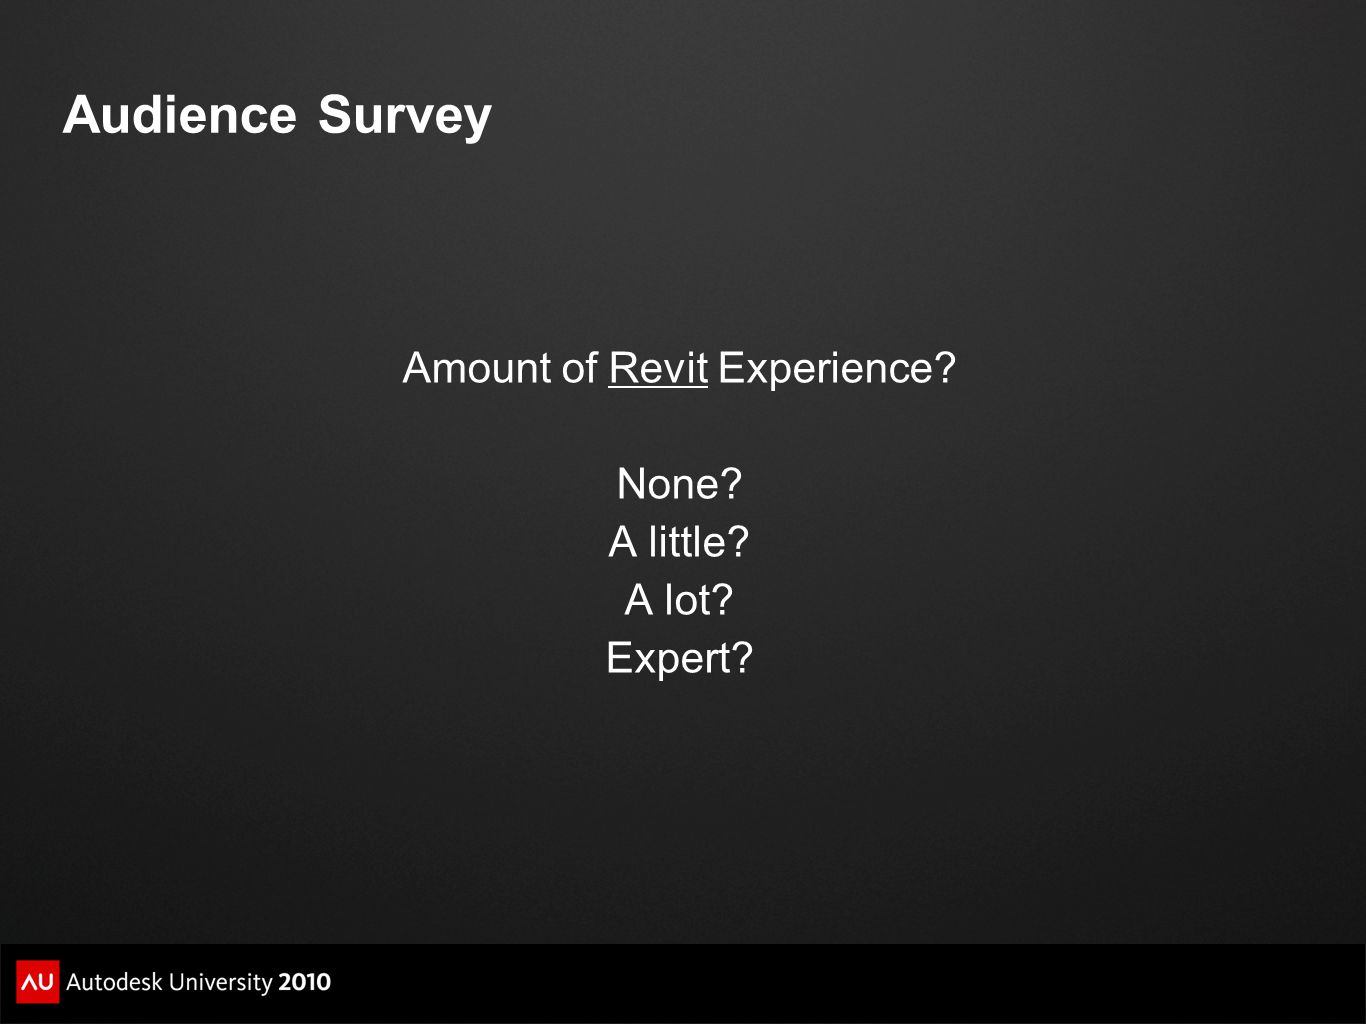 Amount of Revit Experience